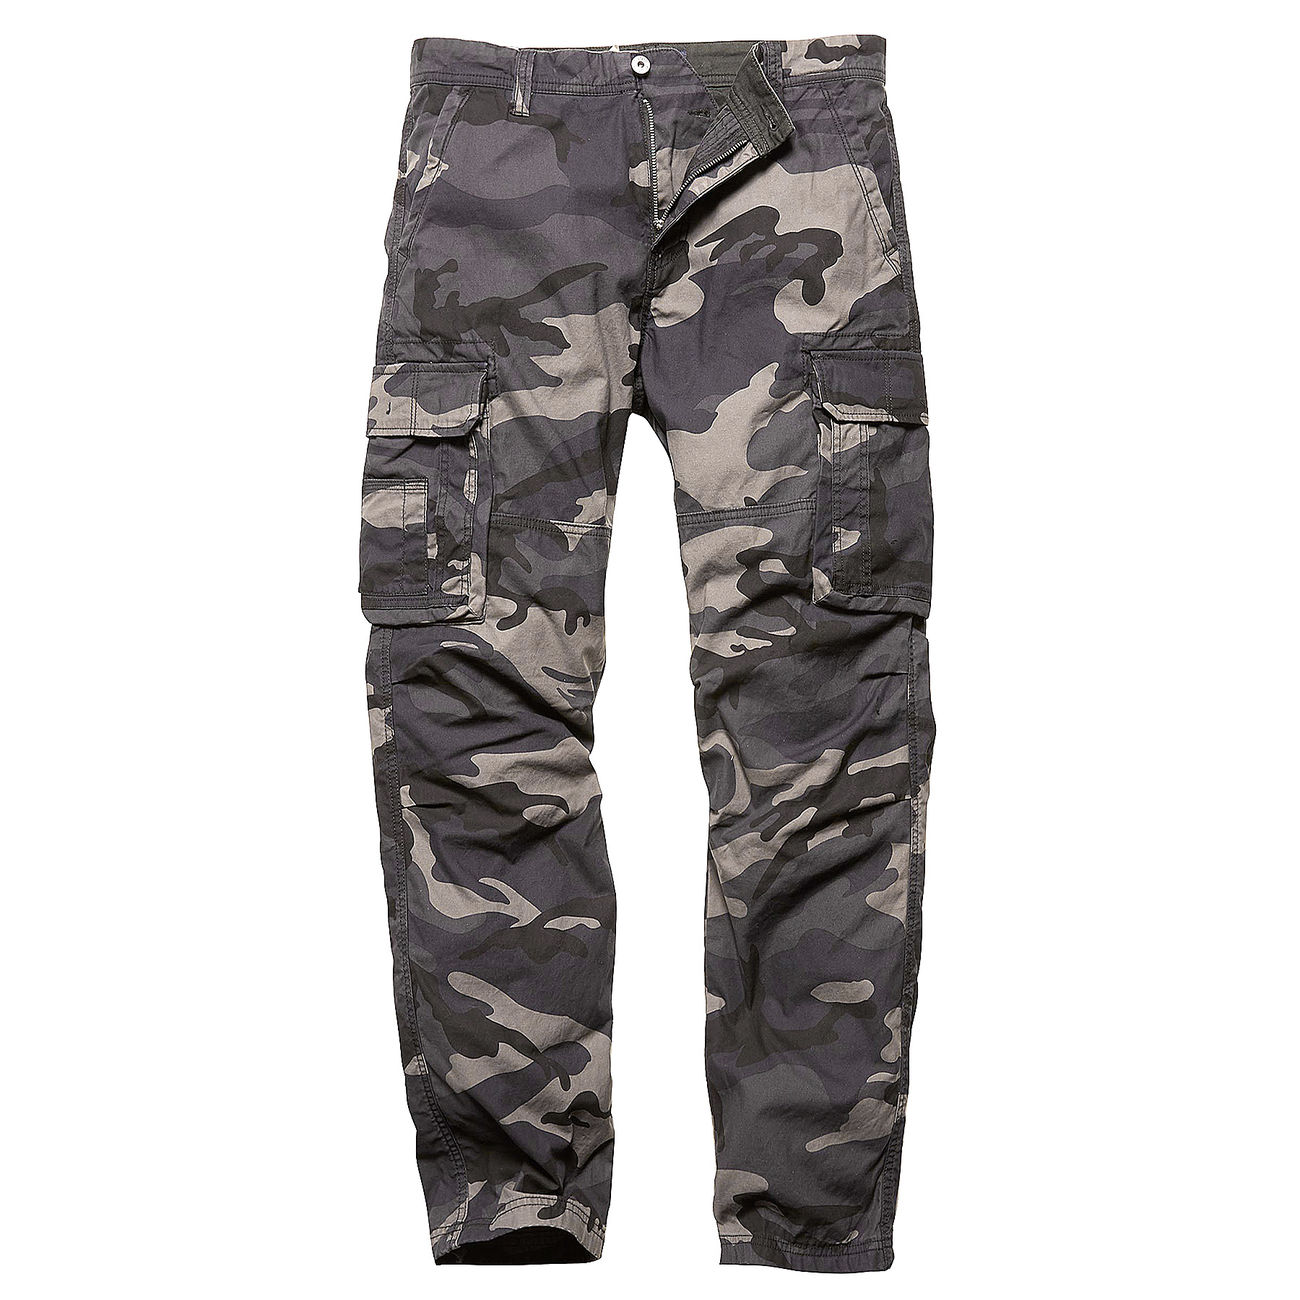 Vintage Industries Reef Hose, dark camo 0